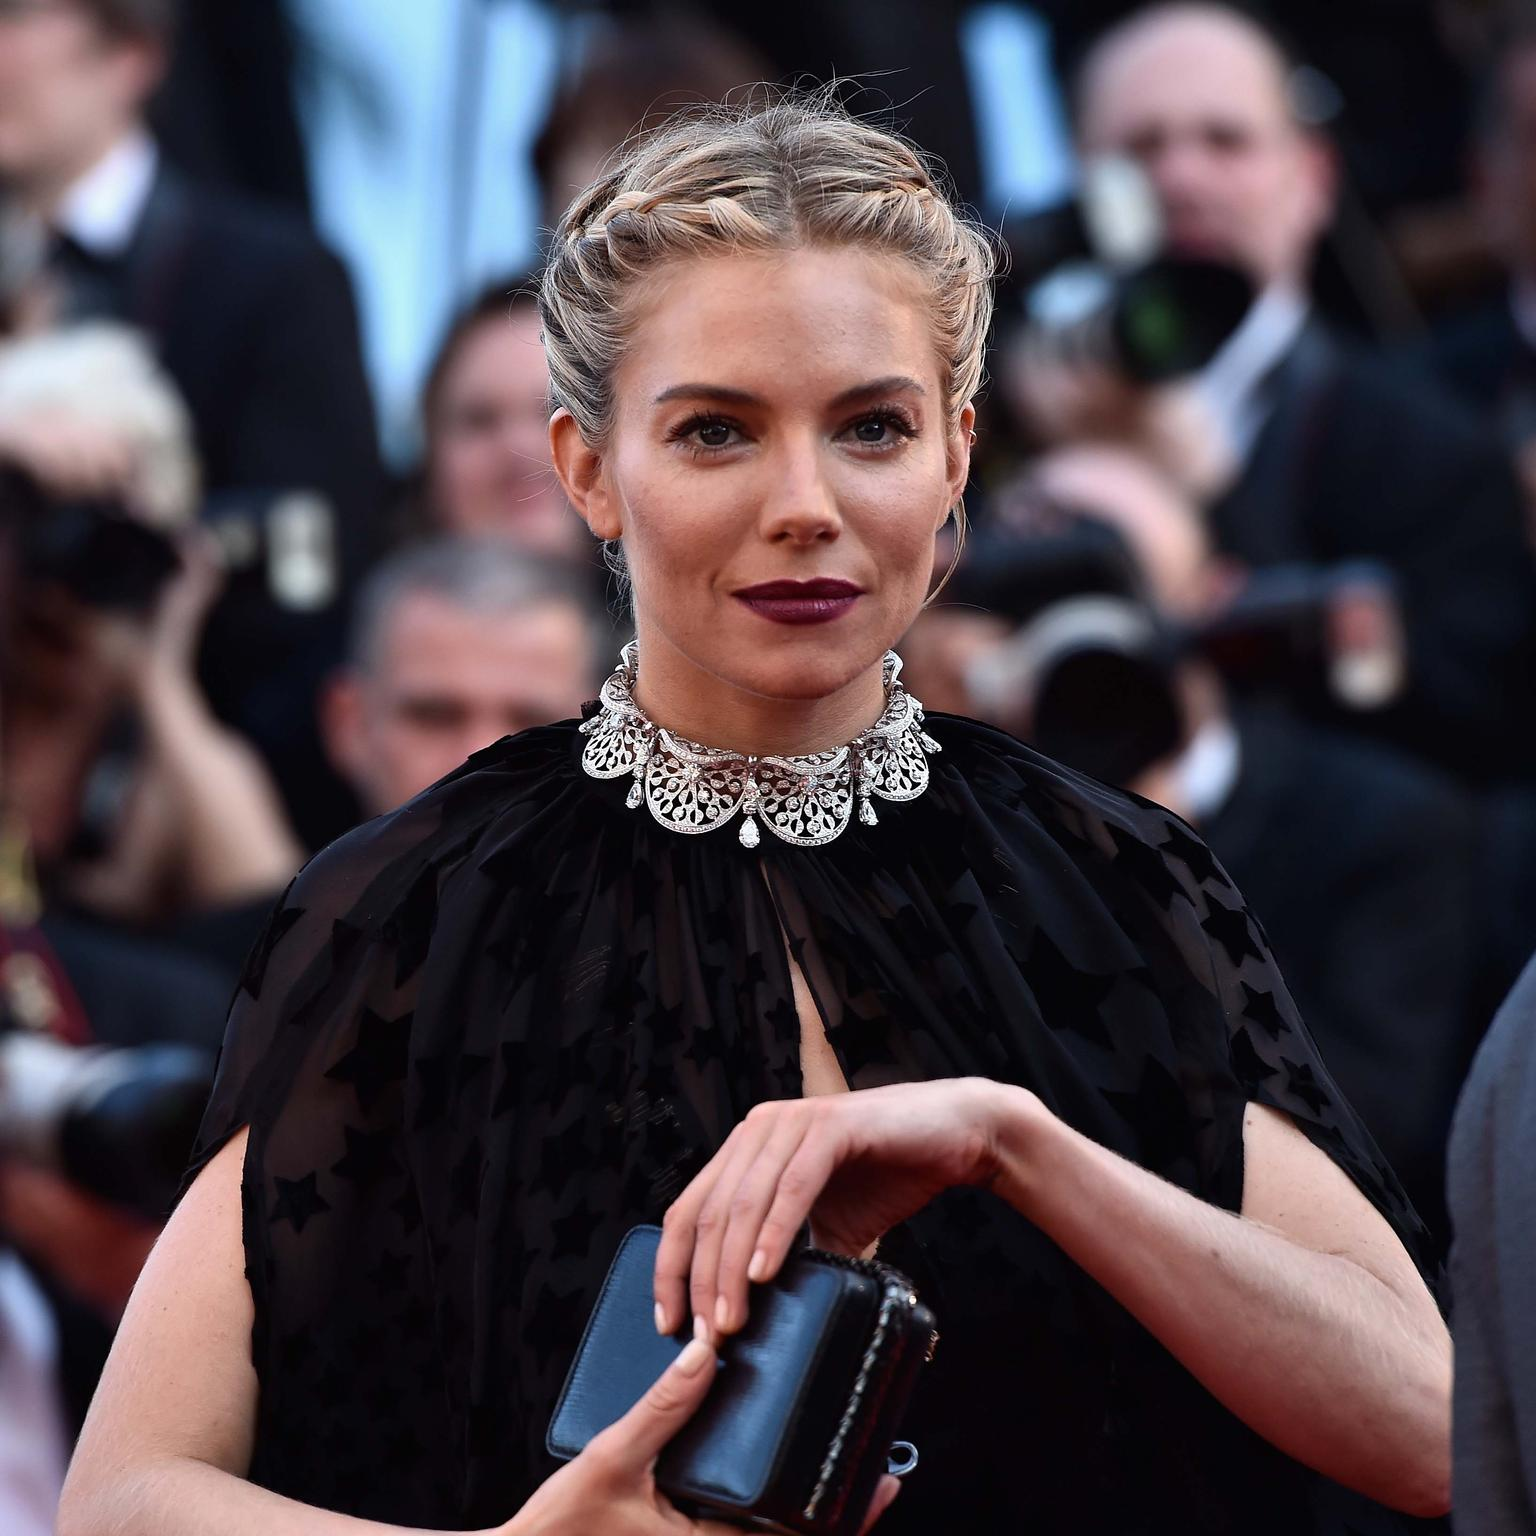 Sienna Miller in Bulgari jewellery